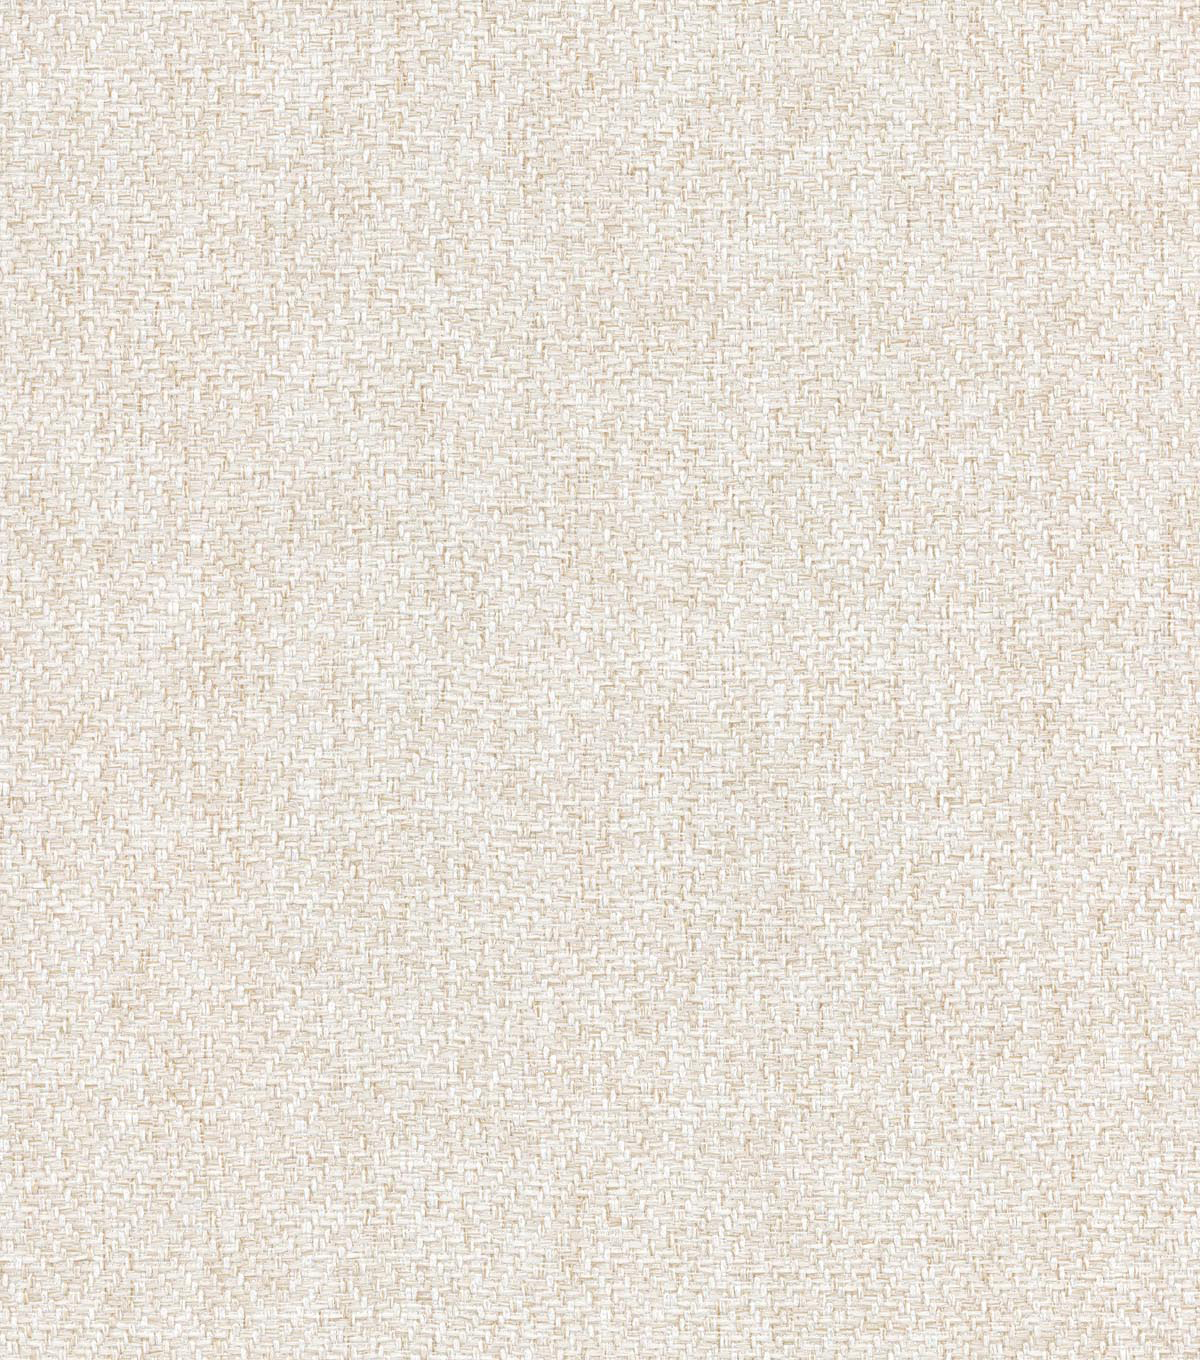 Home Decor 8\u0022x8\u0022 Swatch Fabric-PK Lifestyles Basketry Hemp